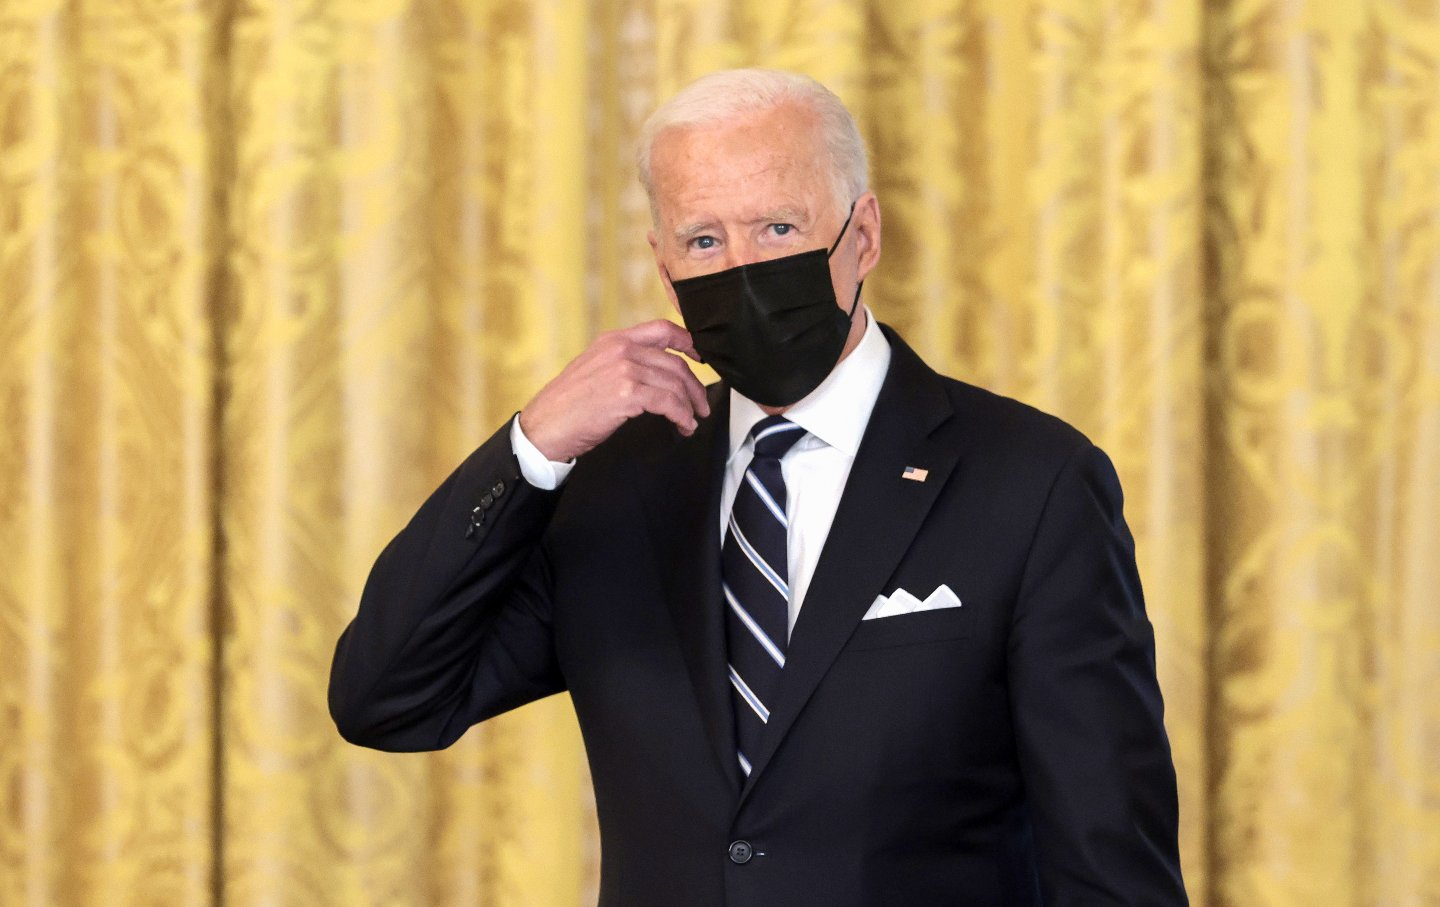 Sure, Biden's Better on Covid Than Trump. That's Not Good Enough.